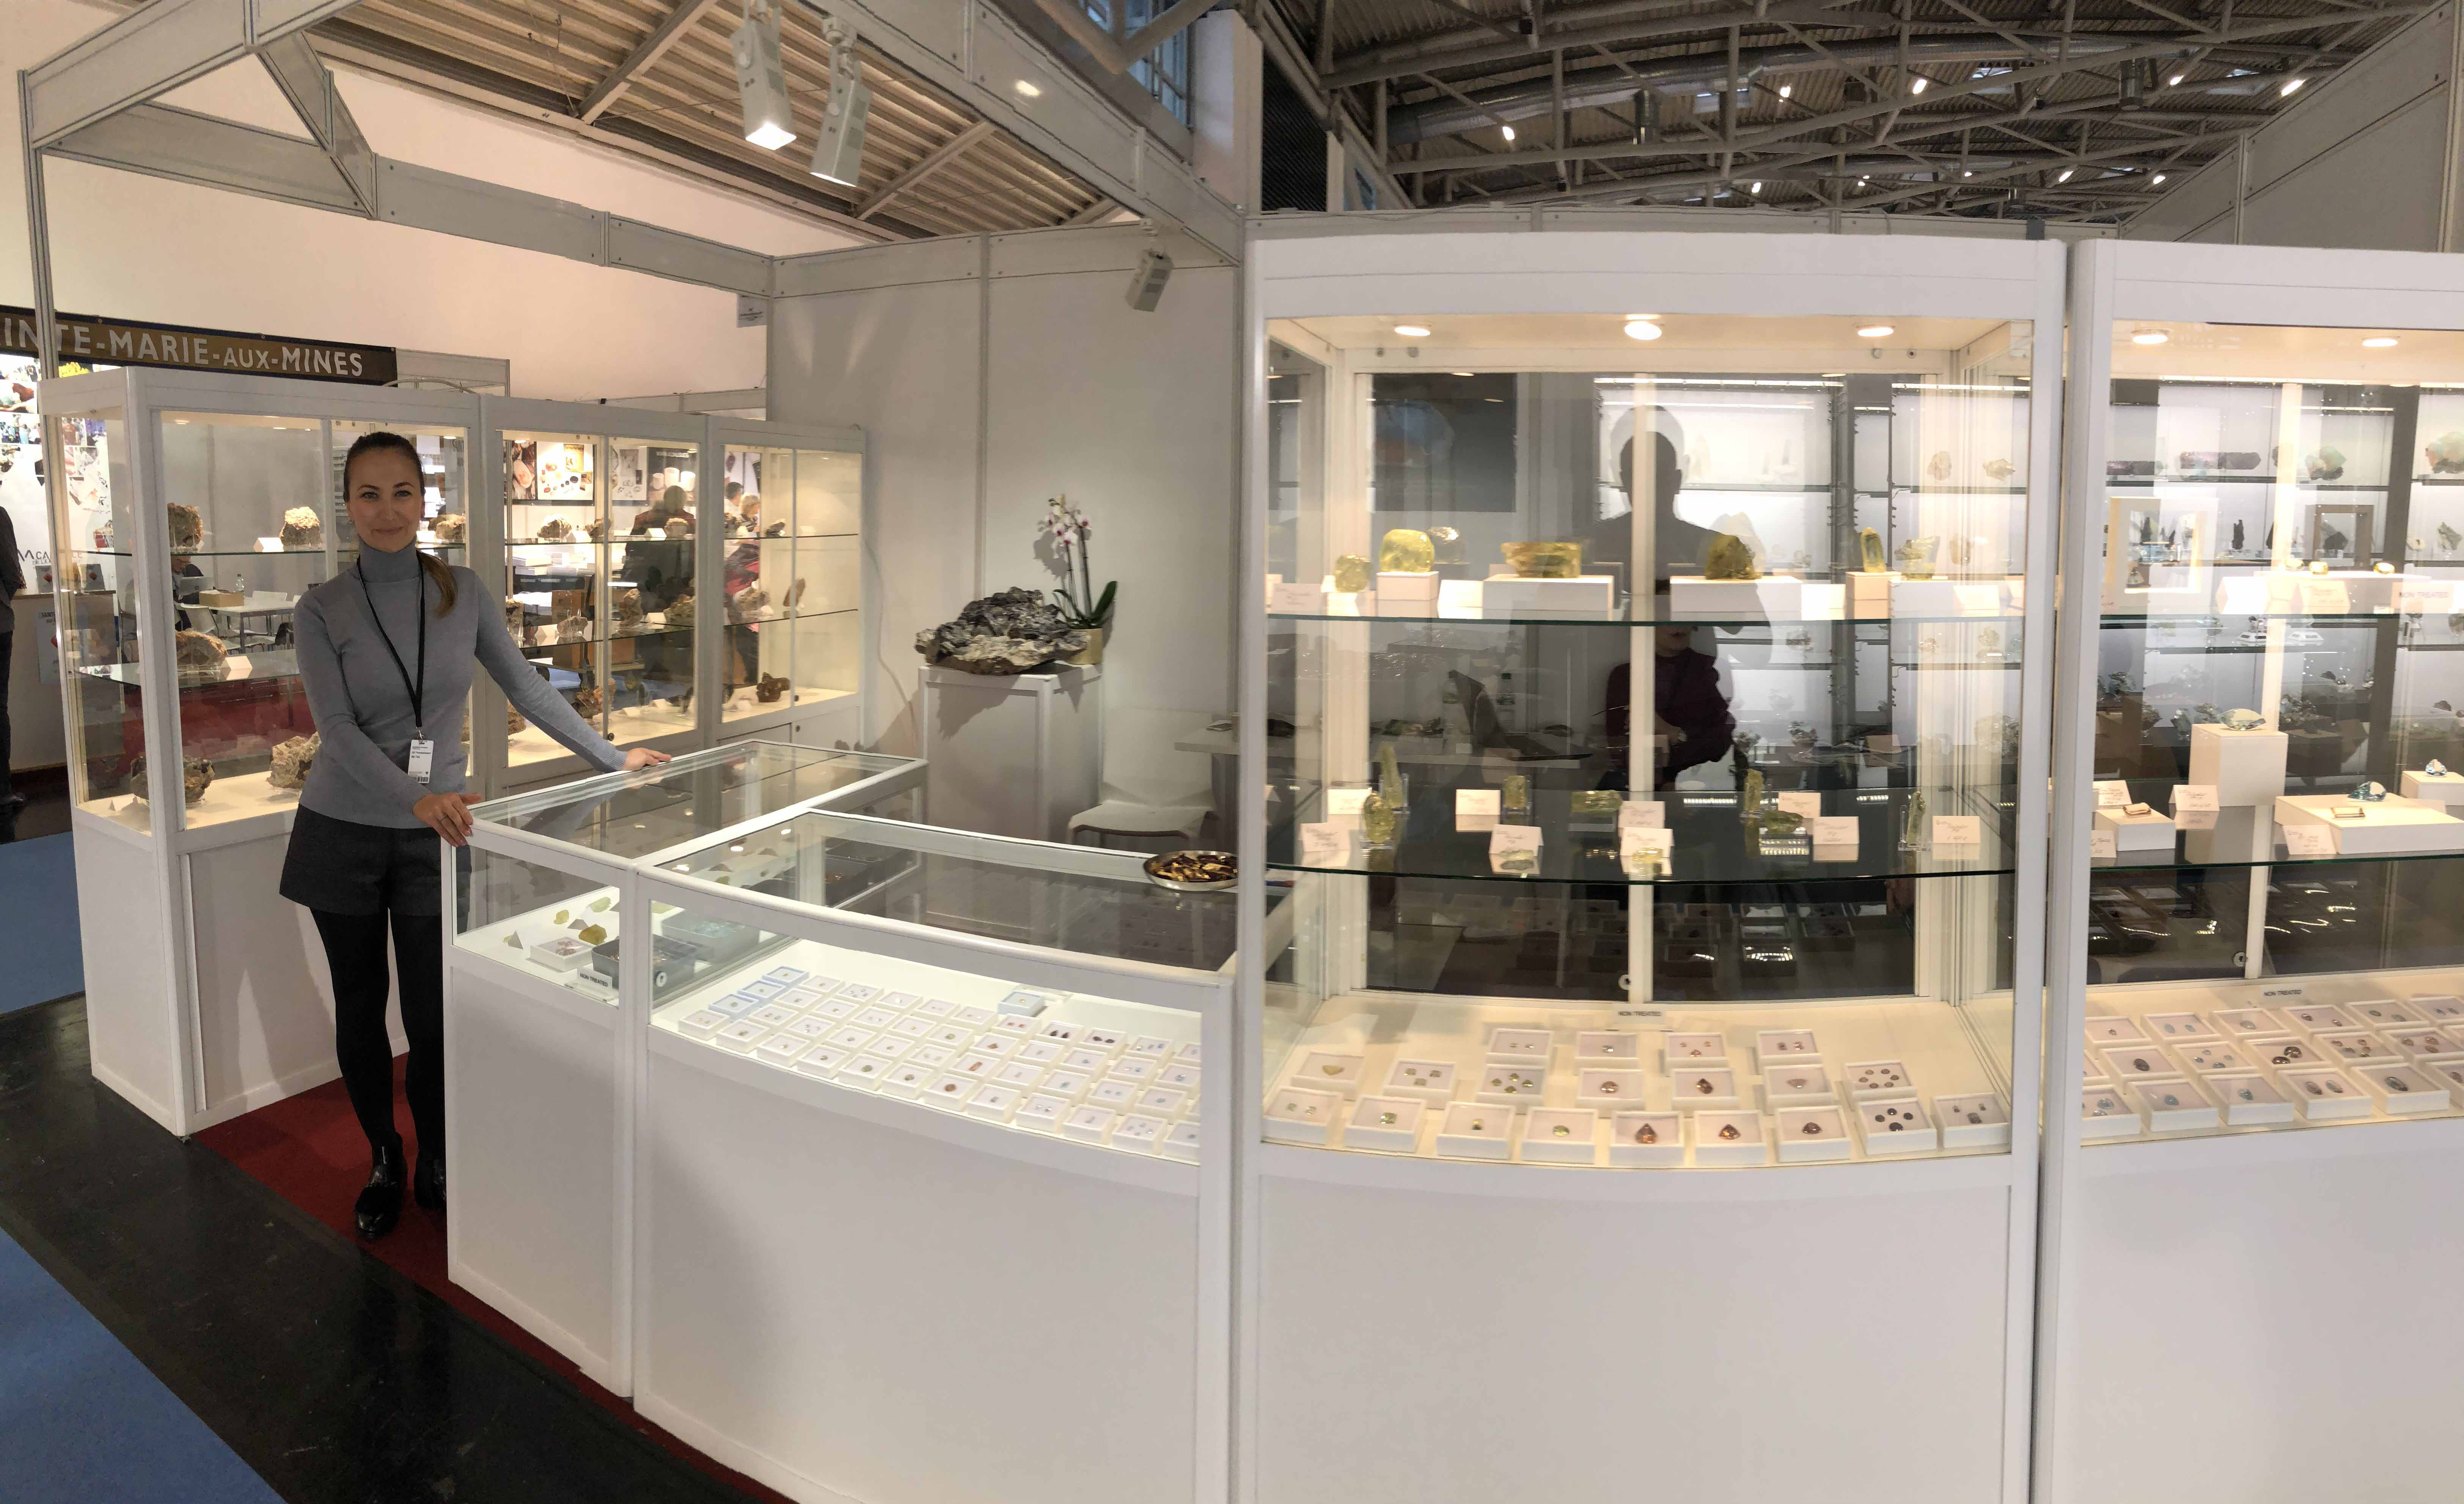 QUARTS SAMOCVETI has exhibited its products at the Munich Mineral Show.